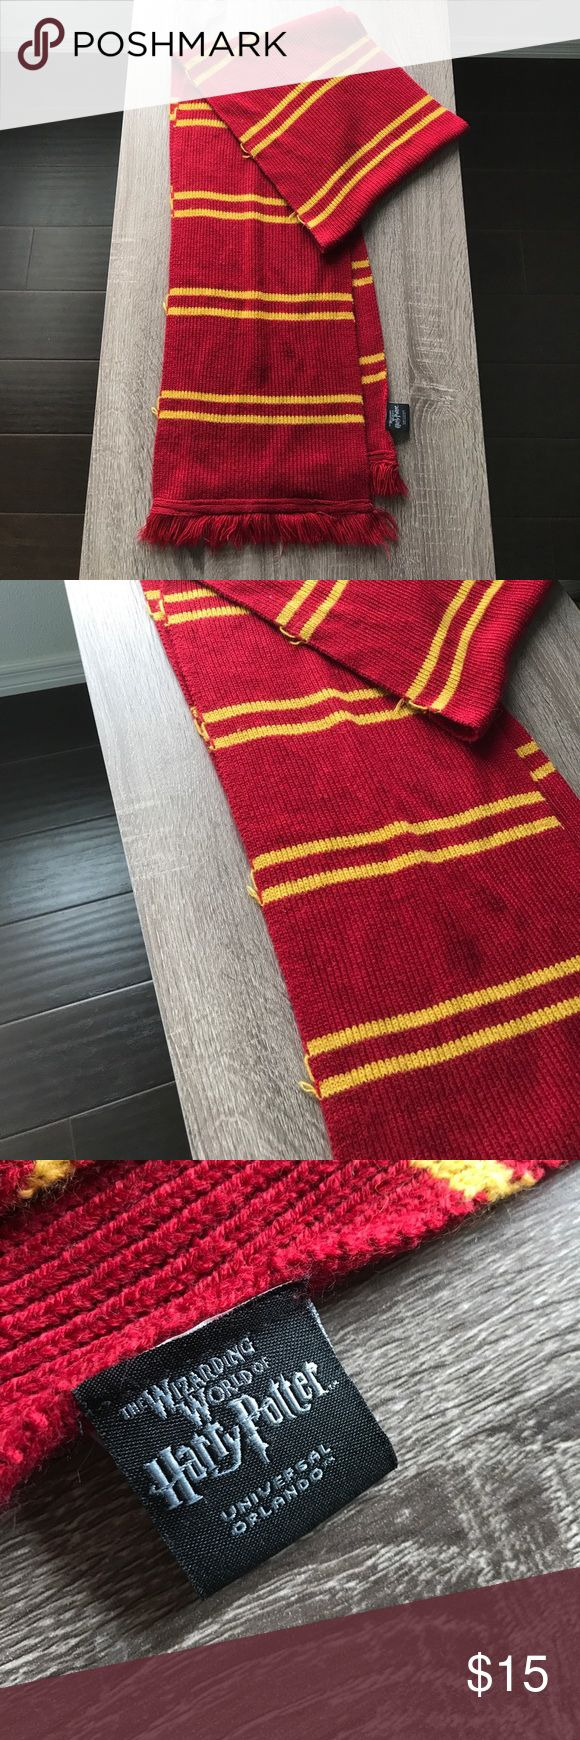 Harry Potter   Gryffindor scarf   Universal studio Gryffindor scarf from Wizarding World of Harry Potter at Universal Studios. Some wear and tear (photos attached) Accessories Scarves & Wraps